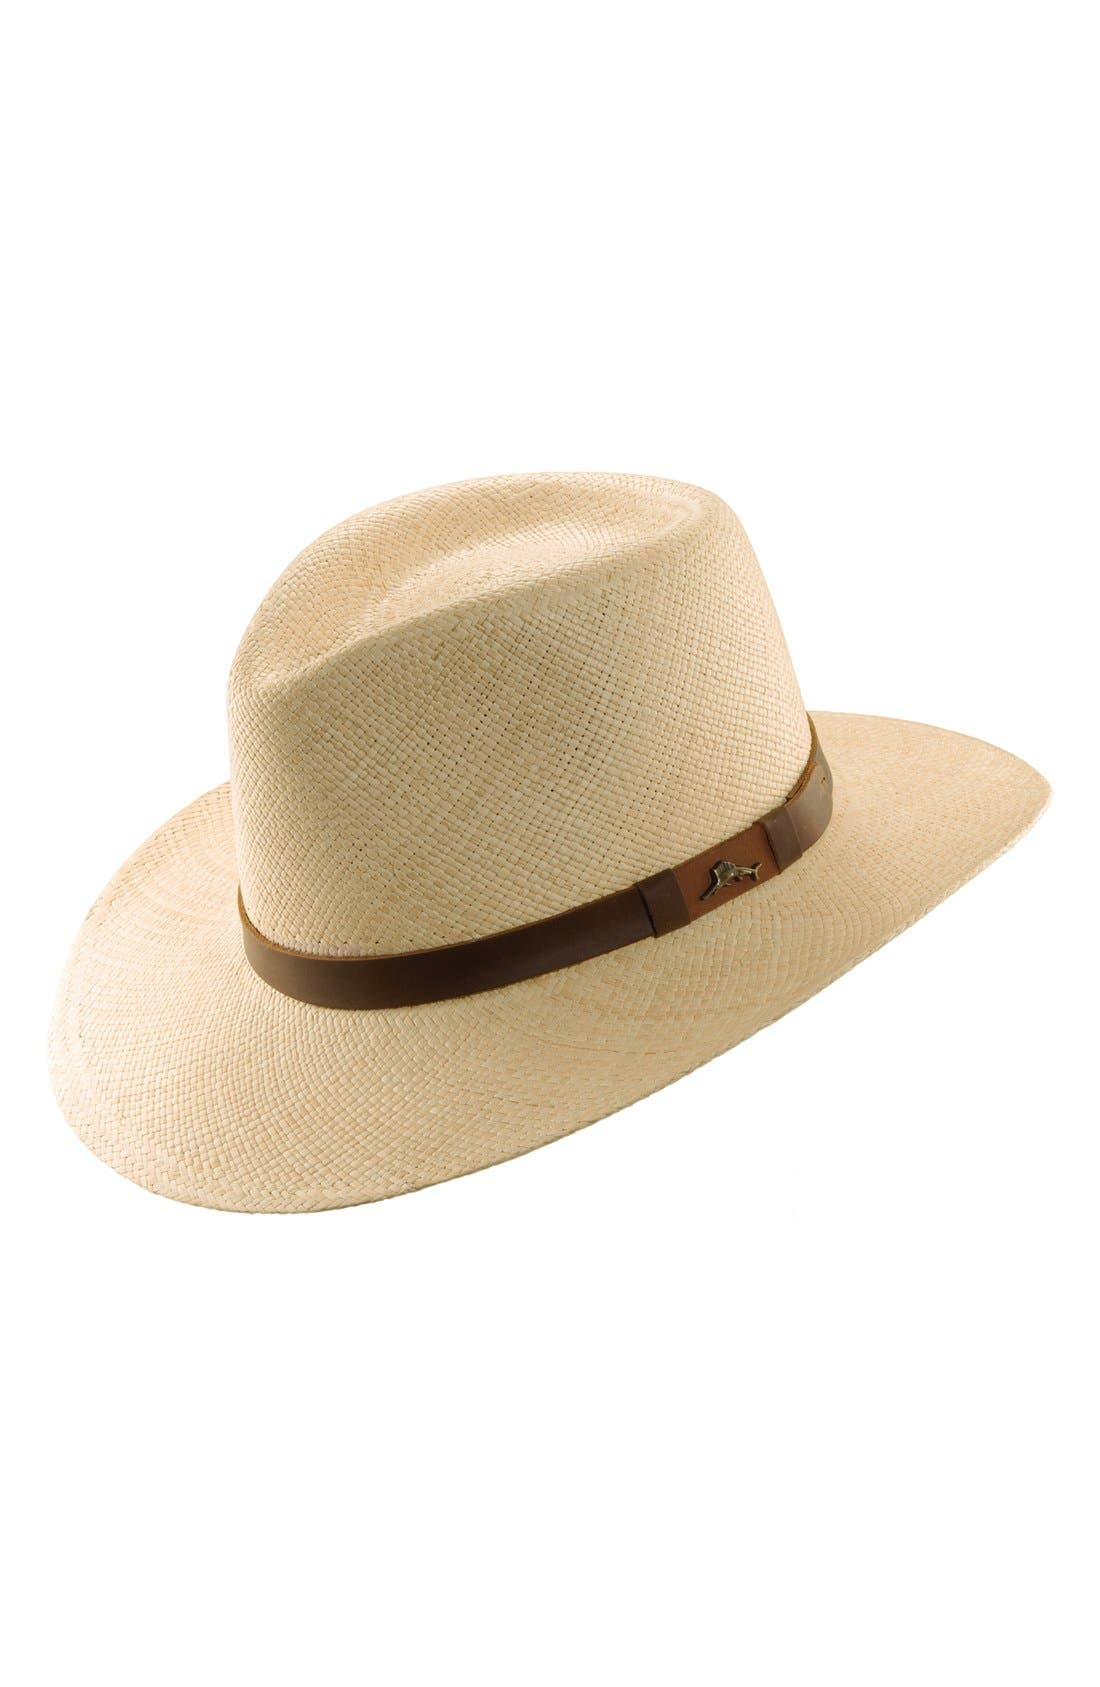 Tommy Bahama Panama Straw Outback Hat